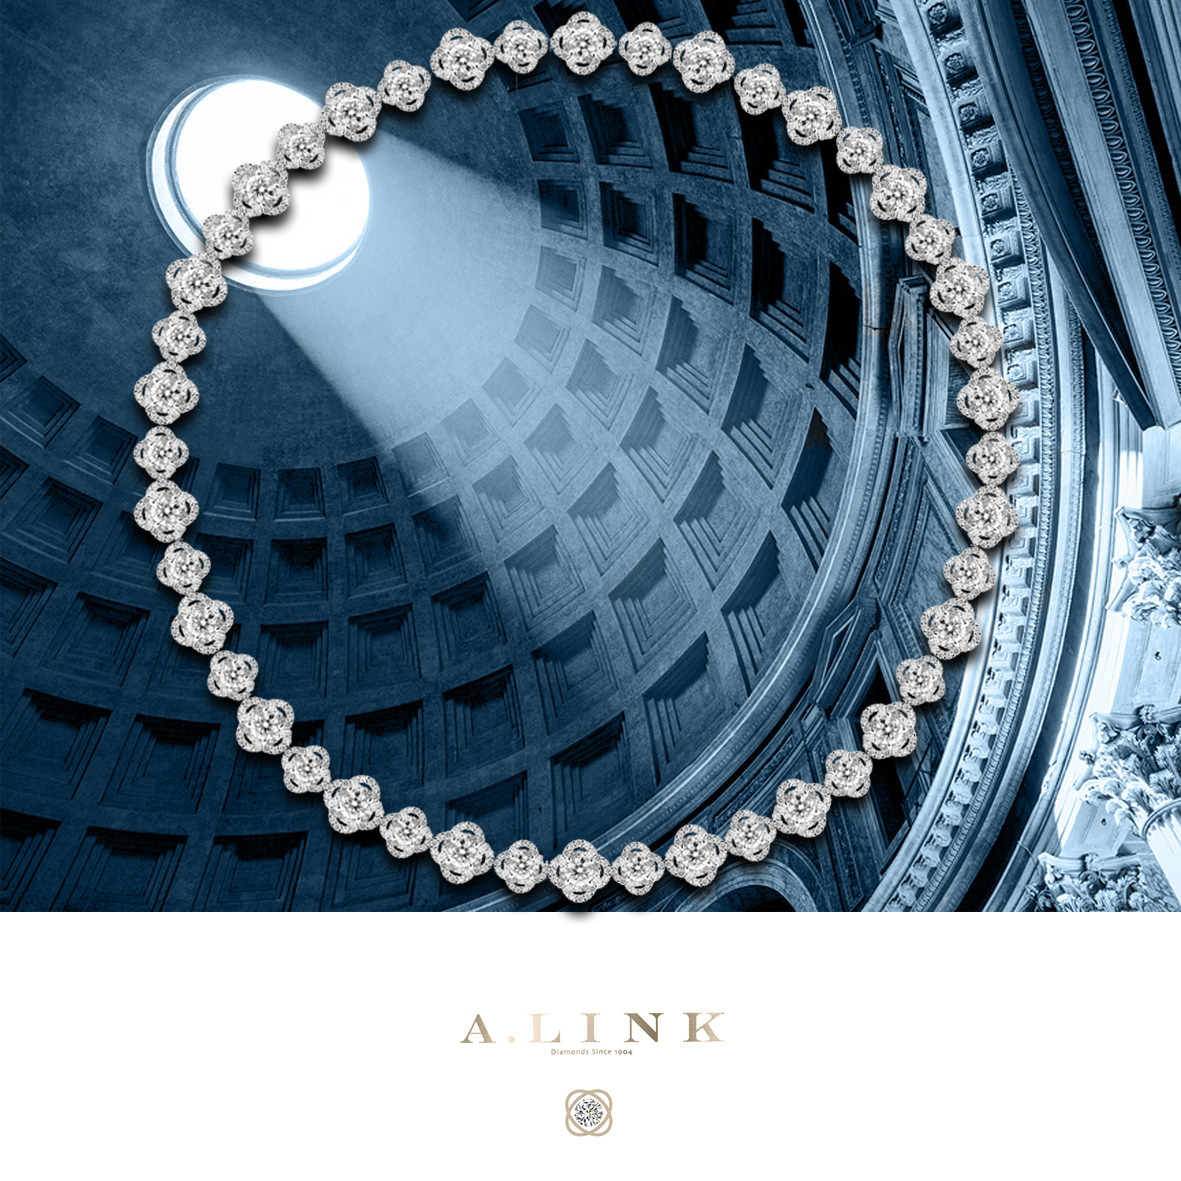 """Wilson & Son Jewelers' clients get """"First Look"""" at A. Link Trunk Show"""